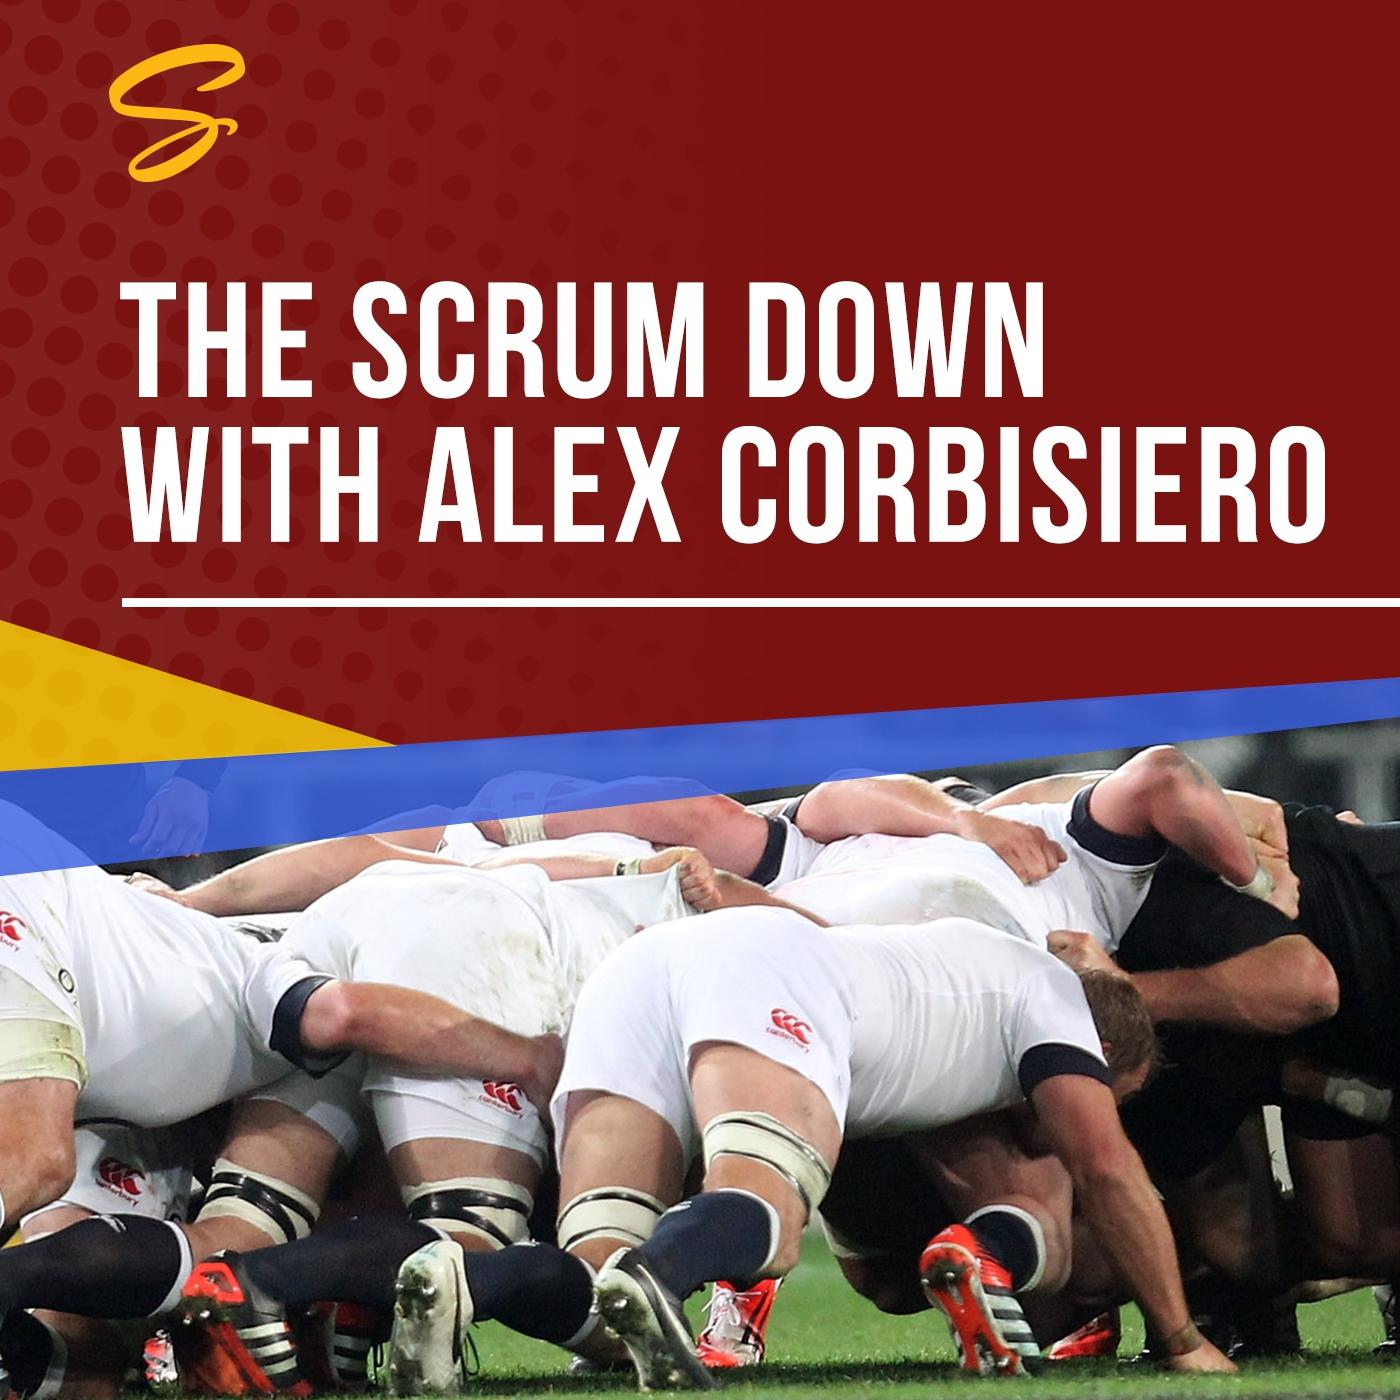 The Scrum Down with Alex Corbisiero